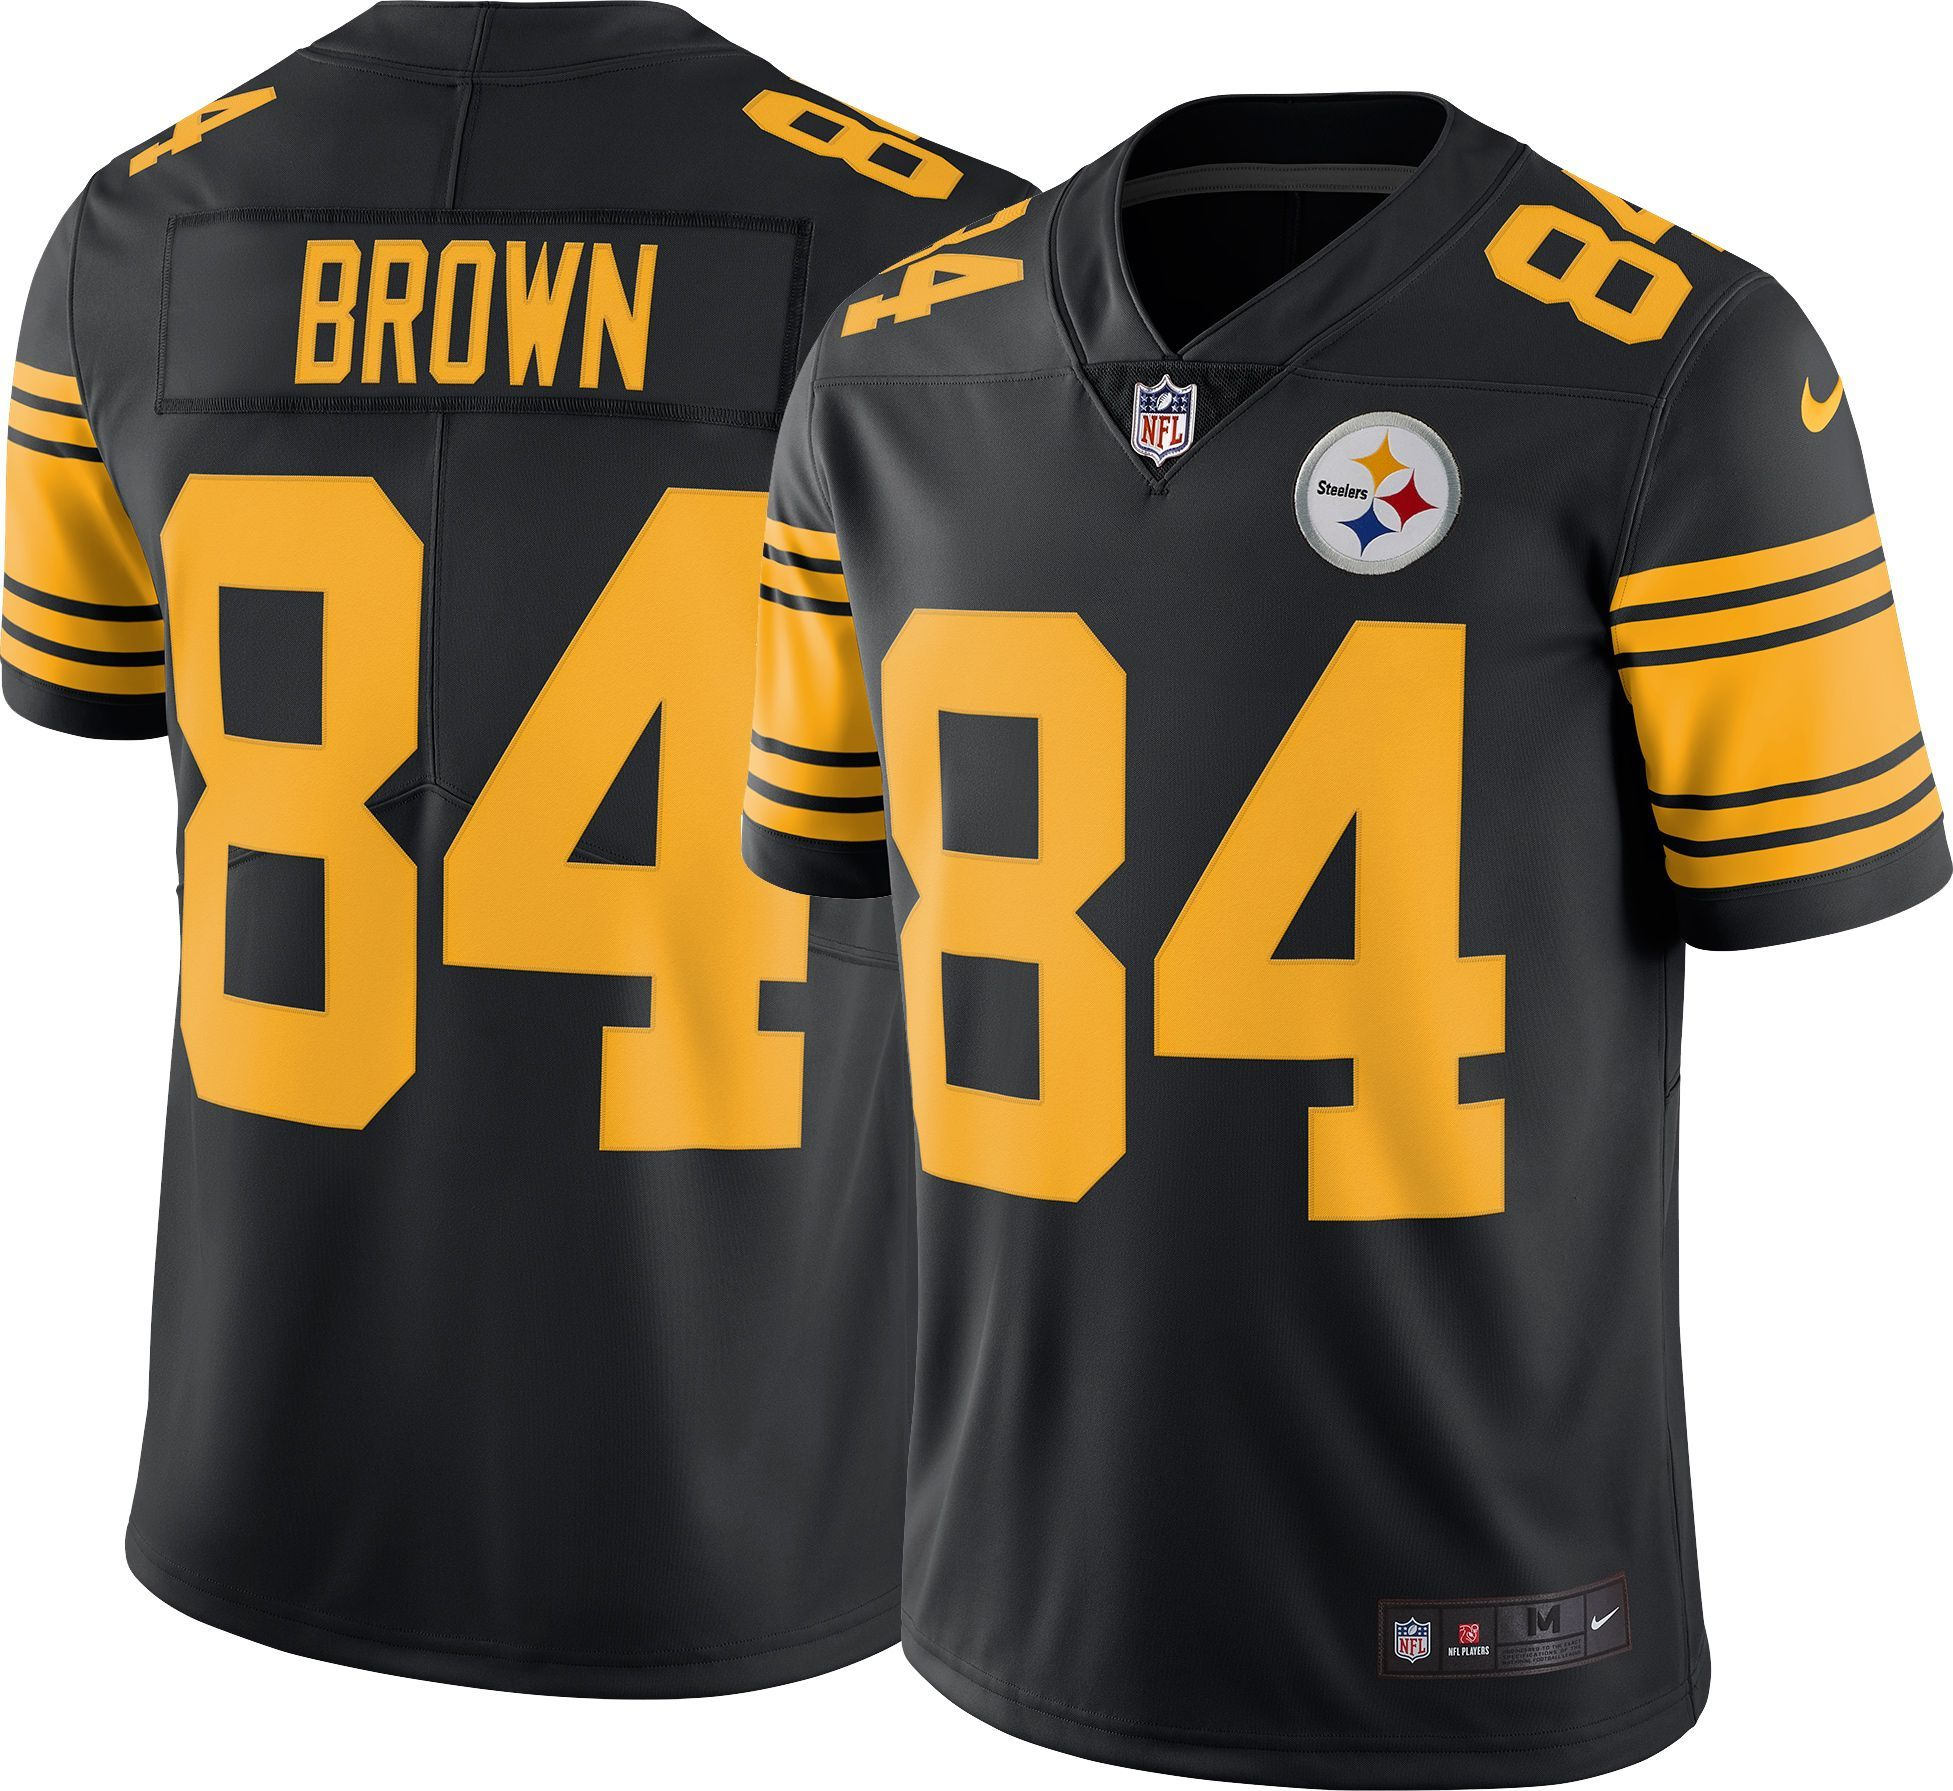 more photos cd809 a1b4a Nike Men's Color Rush Limited Jersey Pittsburgh Steelers ...